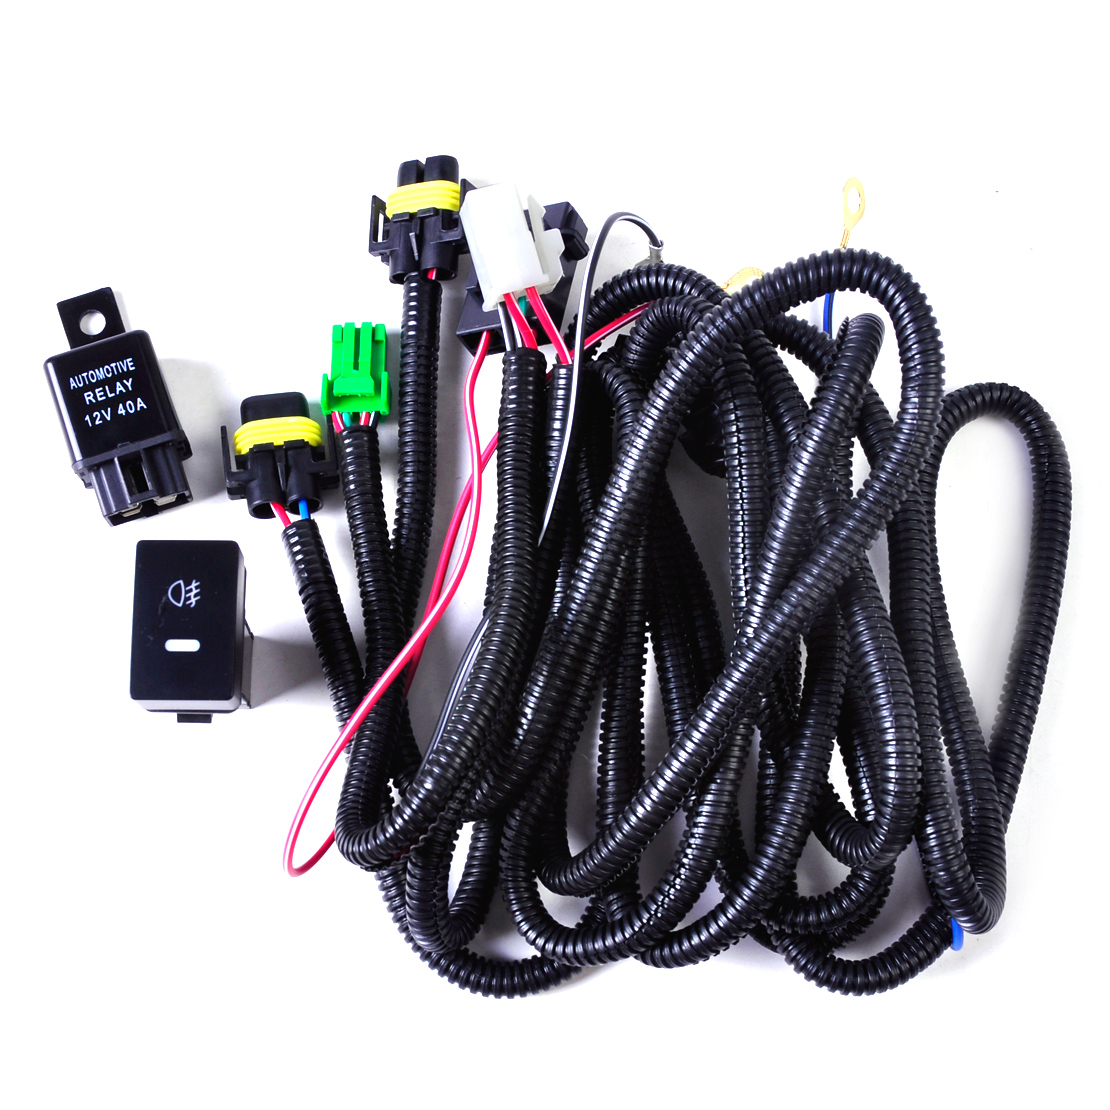 20 pin wire harness wire flashlight wire harness wiring harness sockets + switch for h11 fog light lamp ...